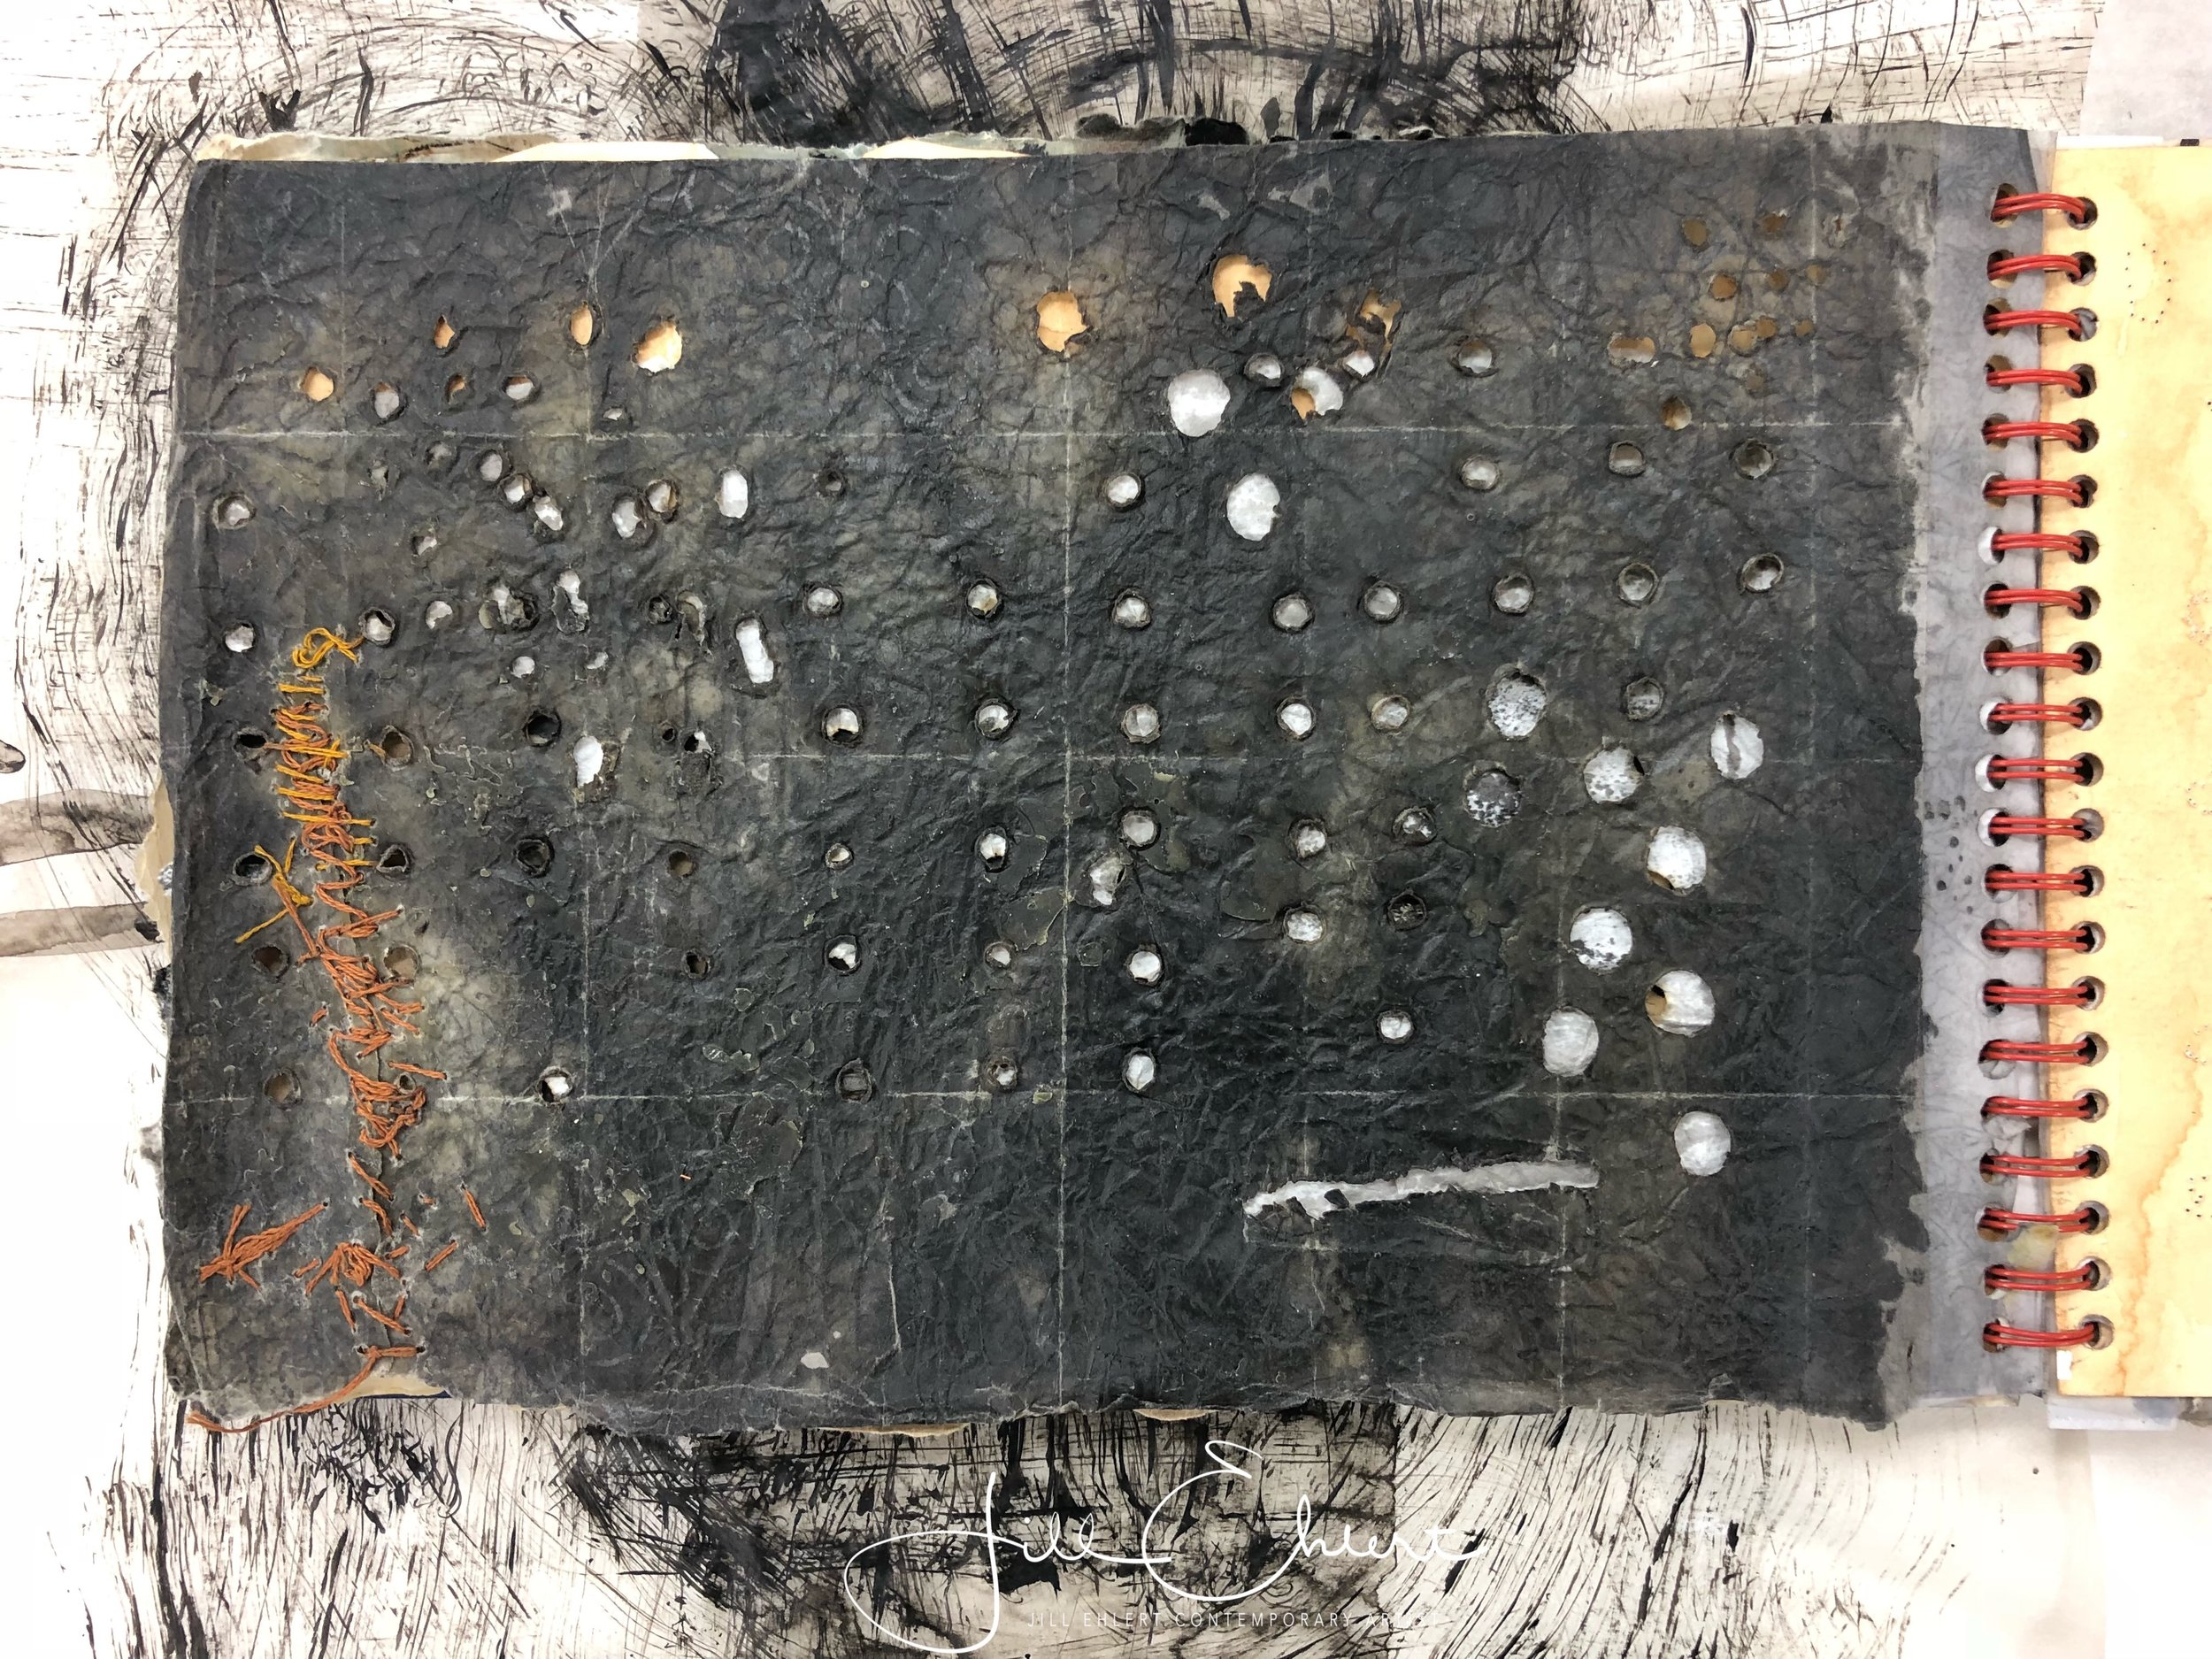 Beeswax over graphite. Punched holes. Sewing with thread.